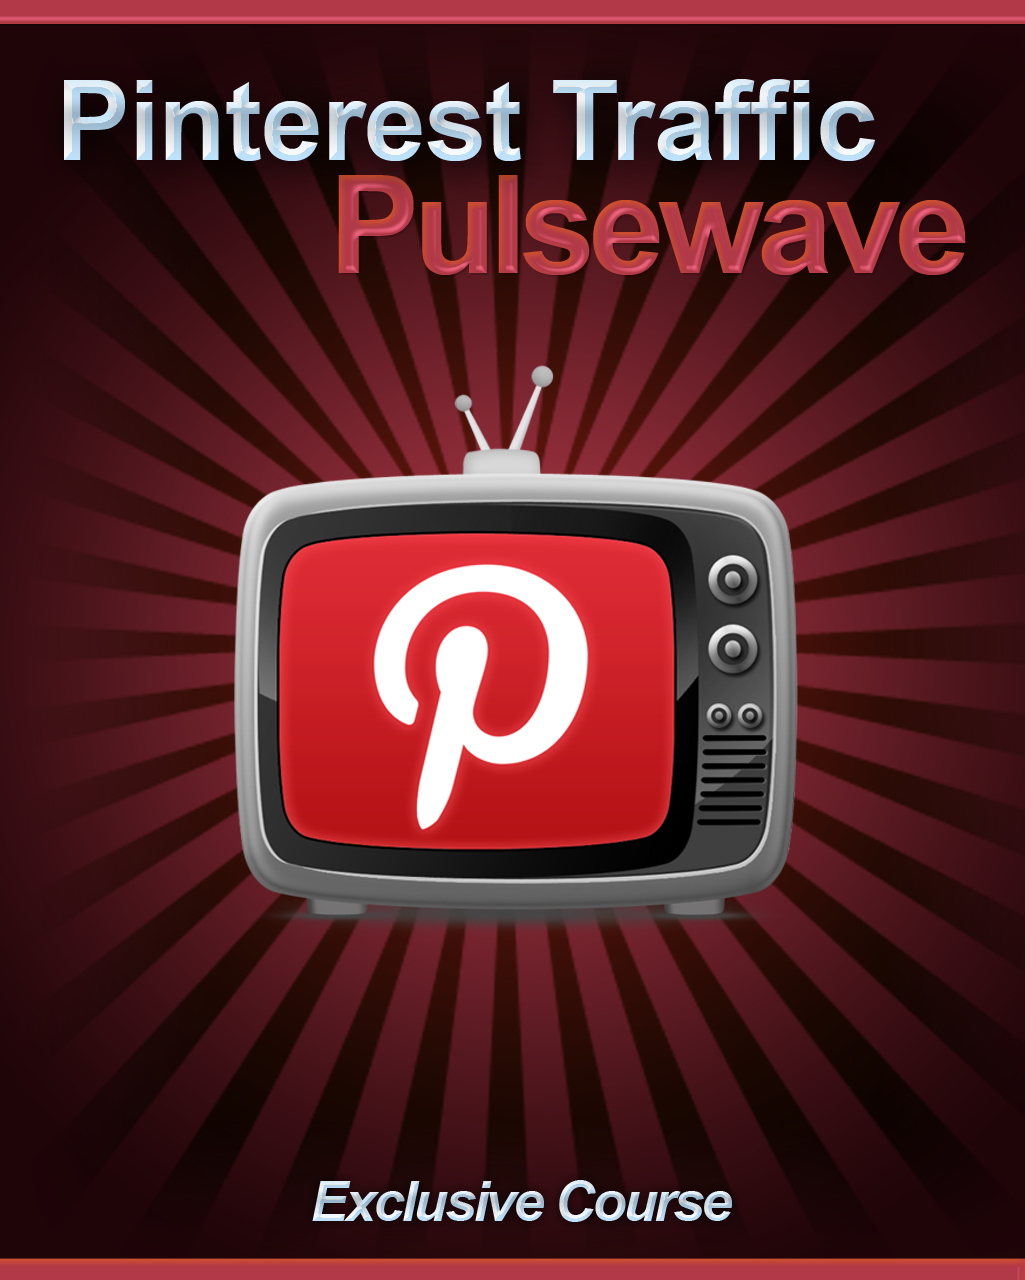 Pinterest Traffic Pulsewave Ebook's Ebook Image